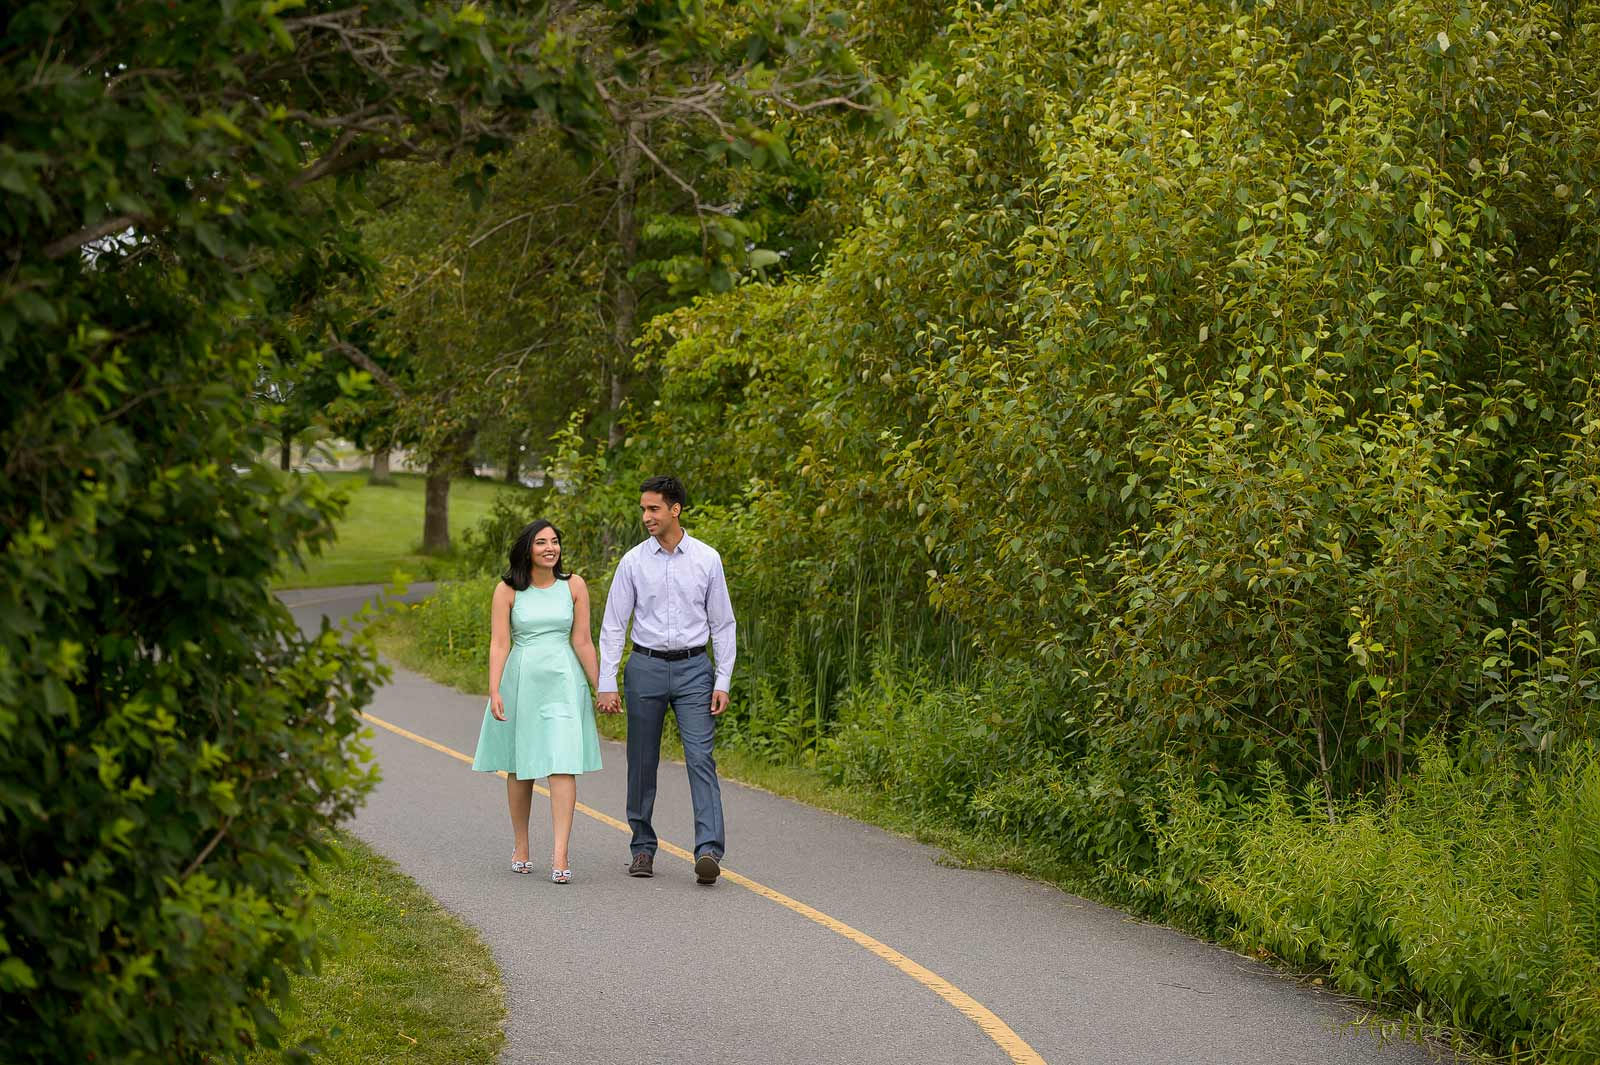 A couple having a romantic stroll along the paths at Dow's Lake